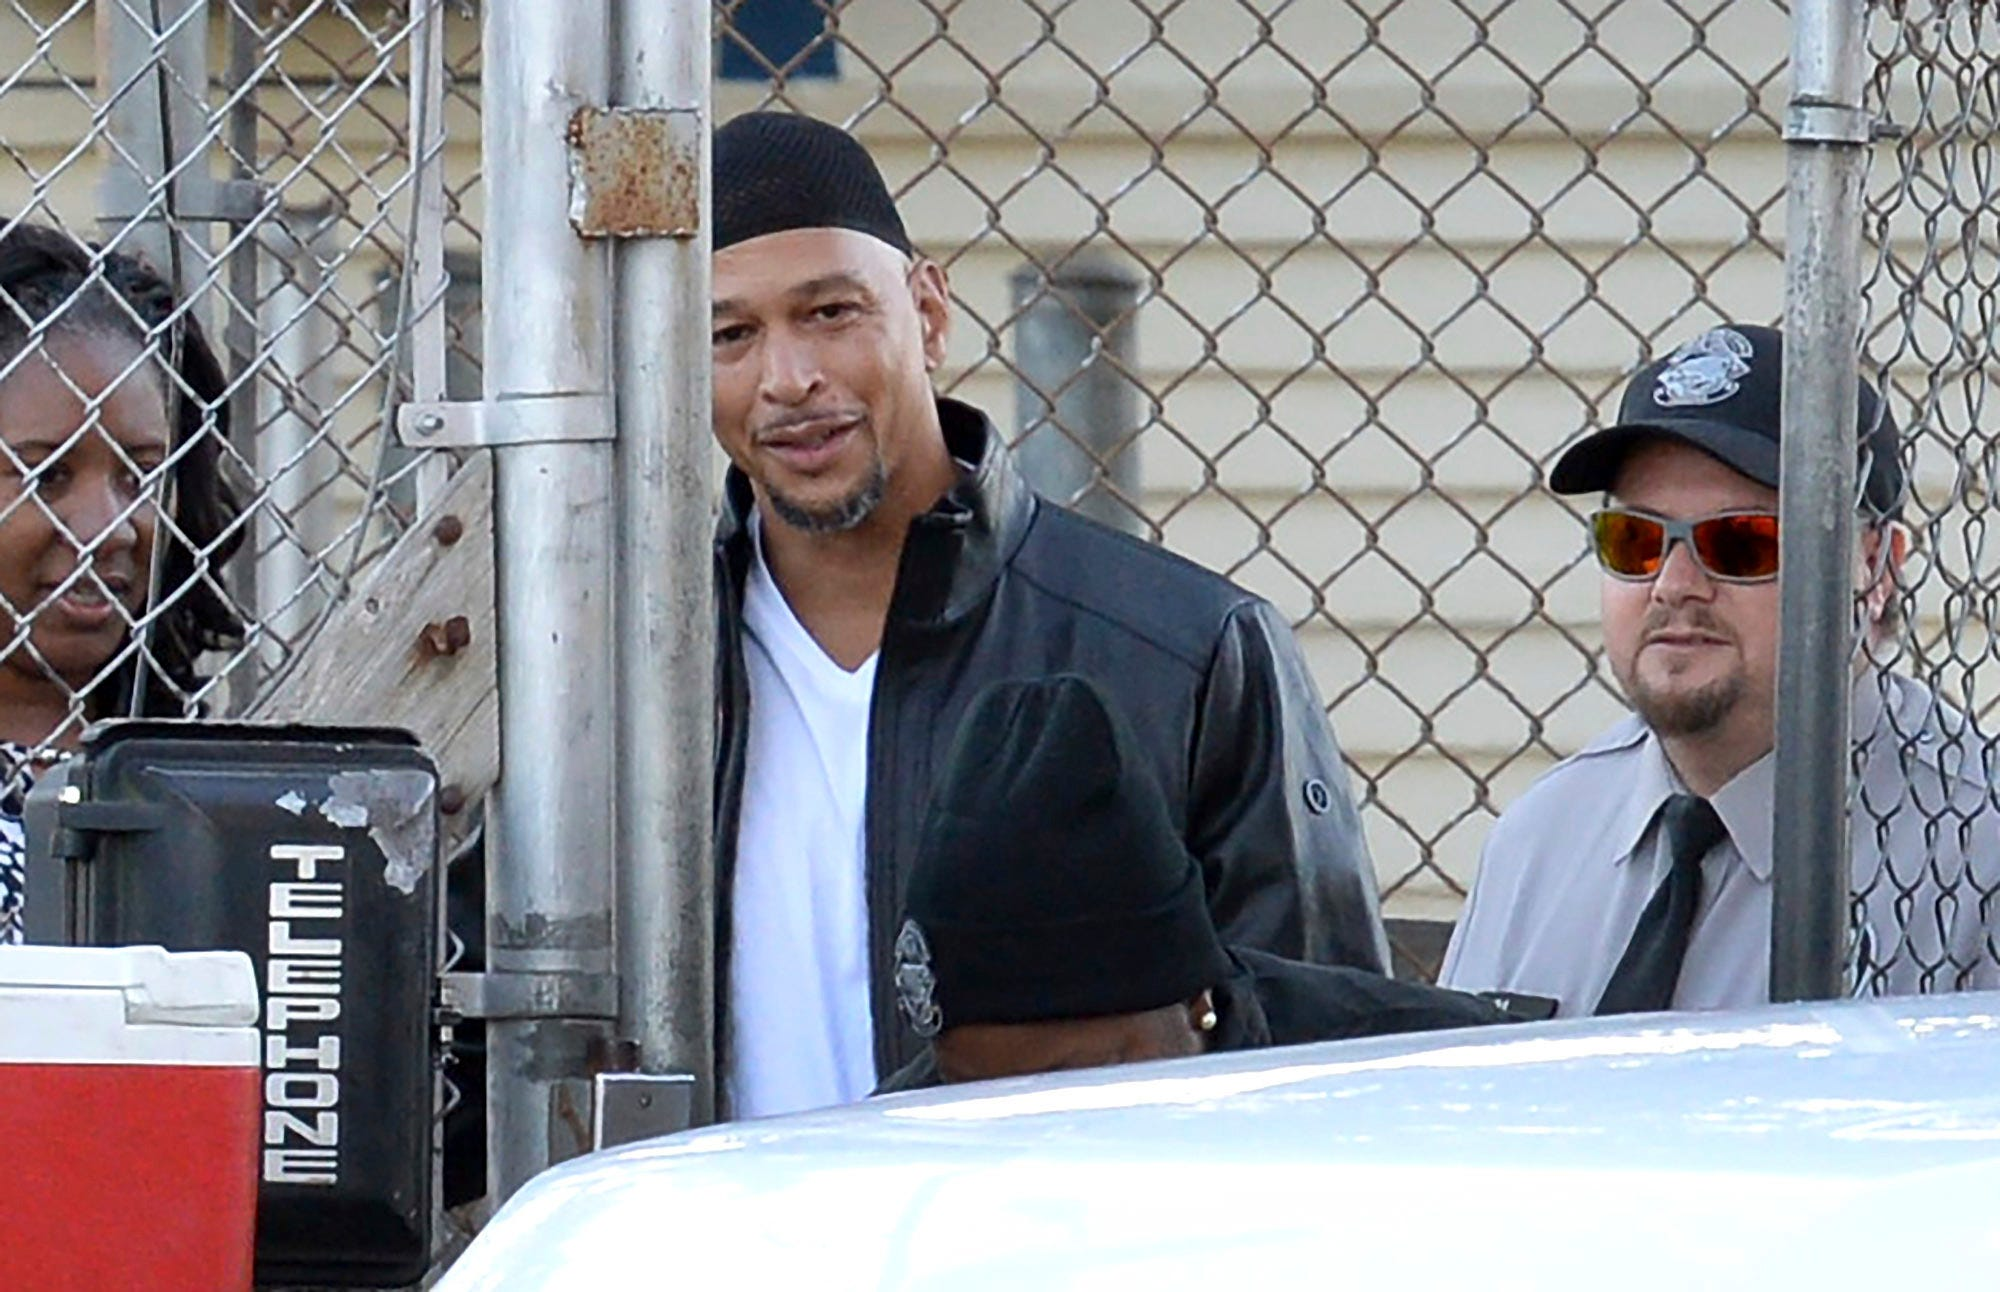 eef52779e9f Ex-NFL player Rae Carruth released after nearly 19 years in prison for  murder plot